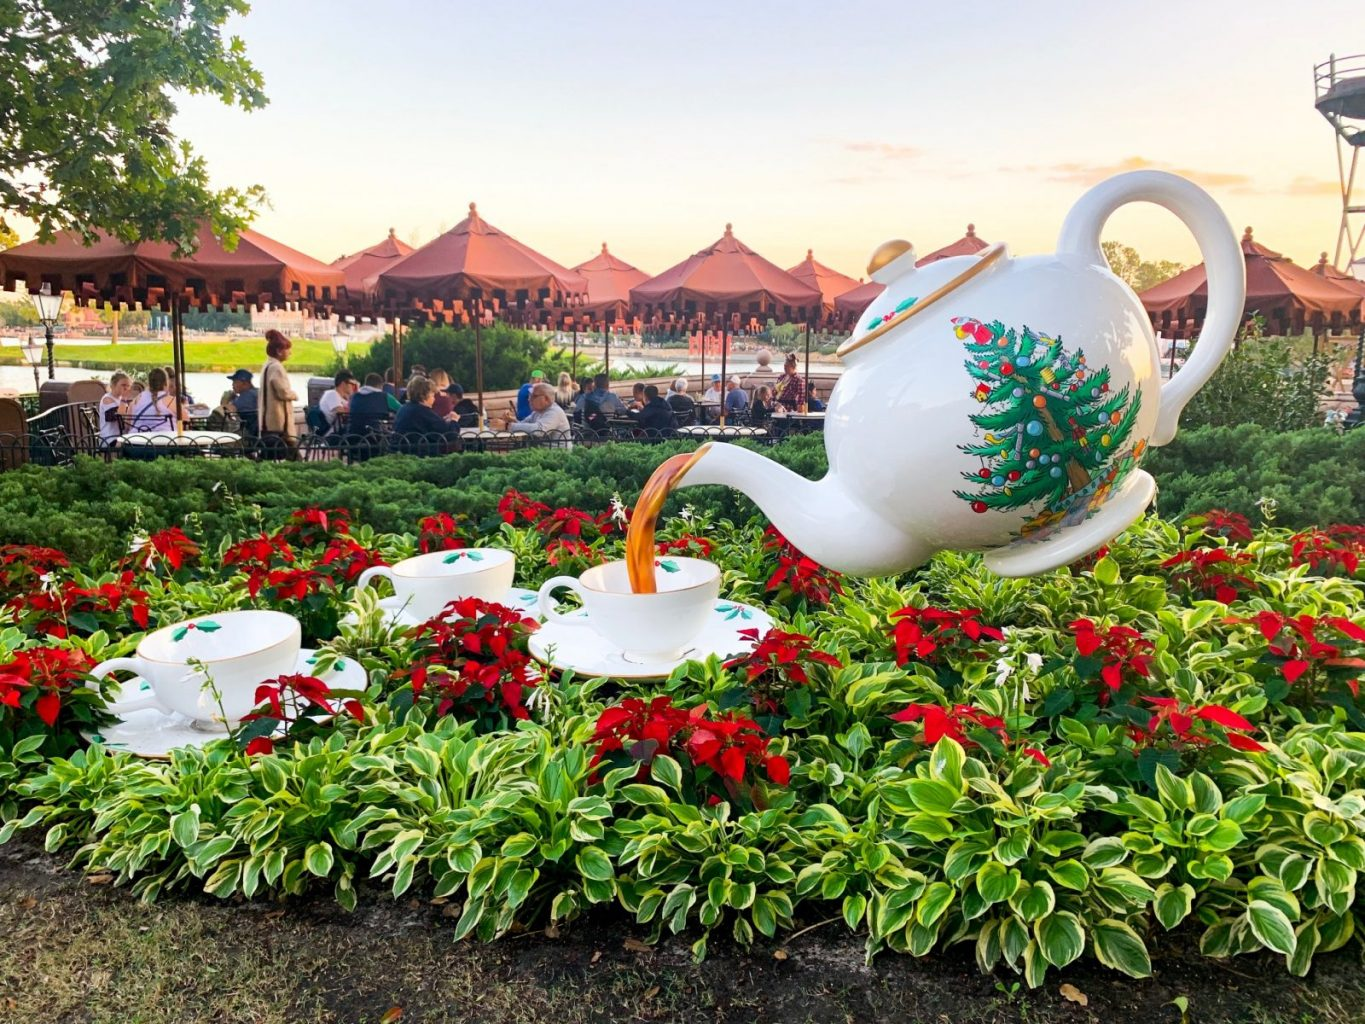 Teapot for the Christmas Epcot celebration